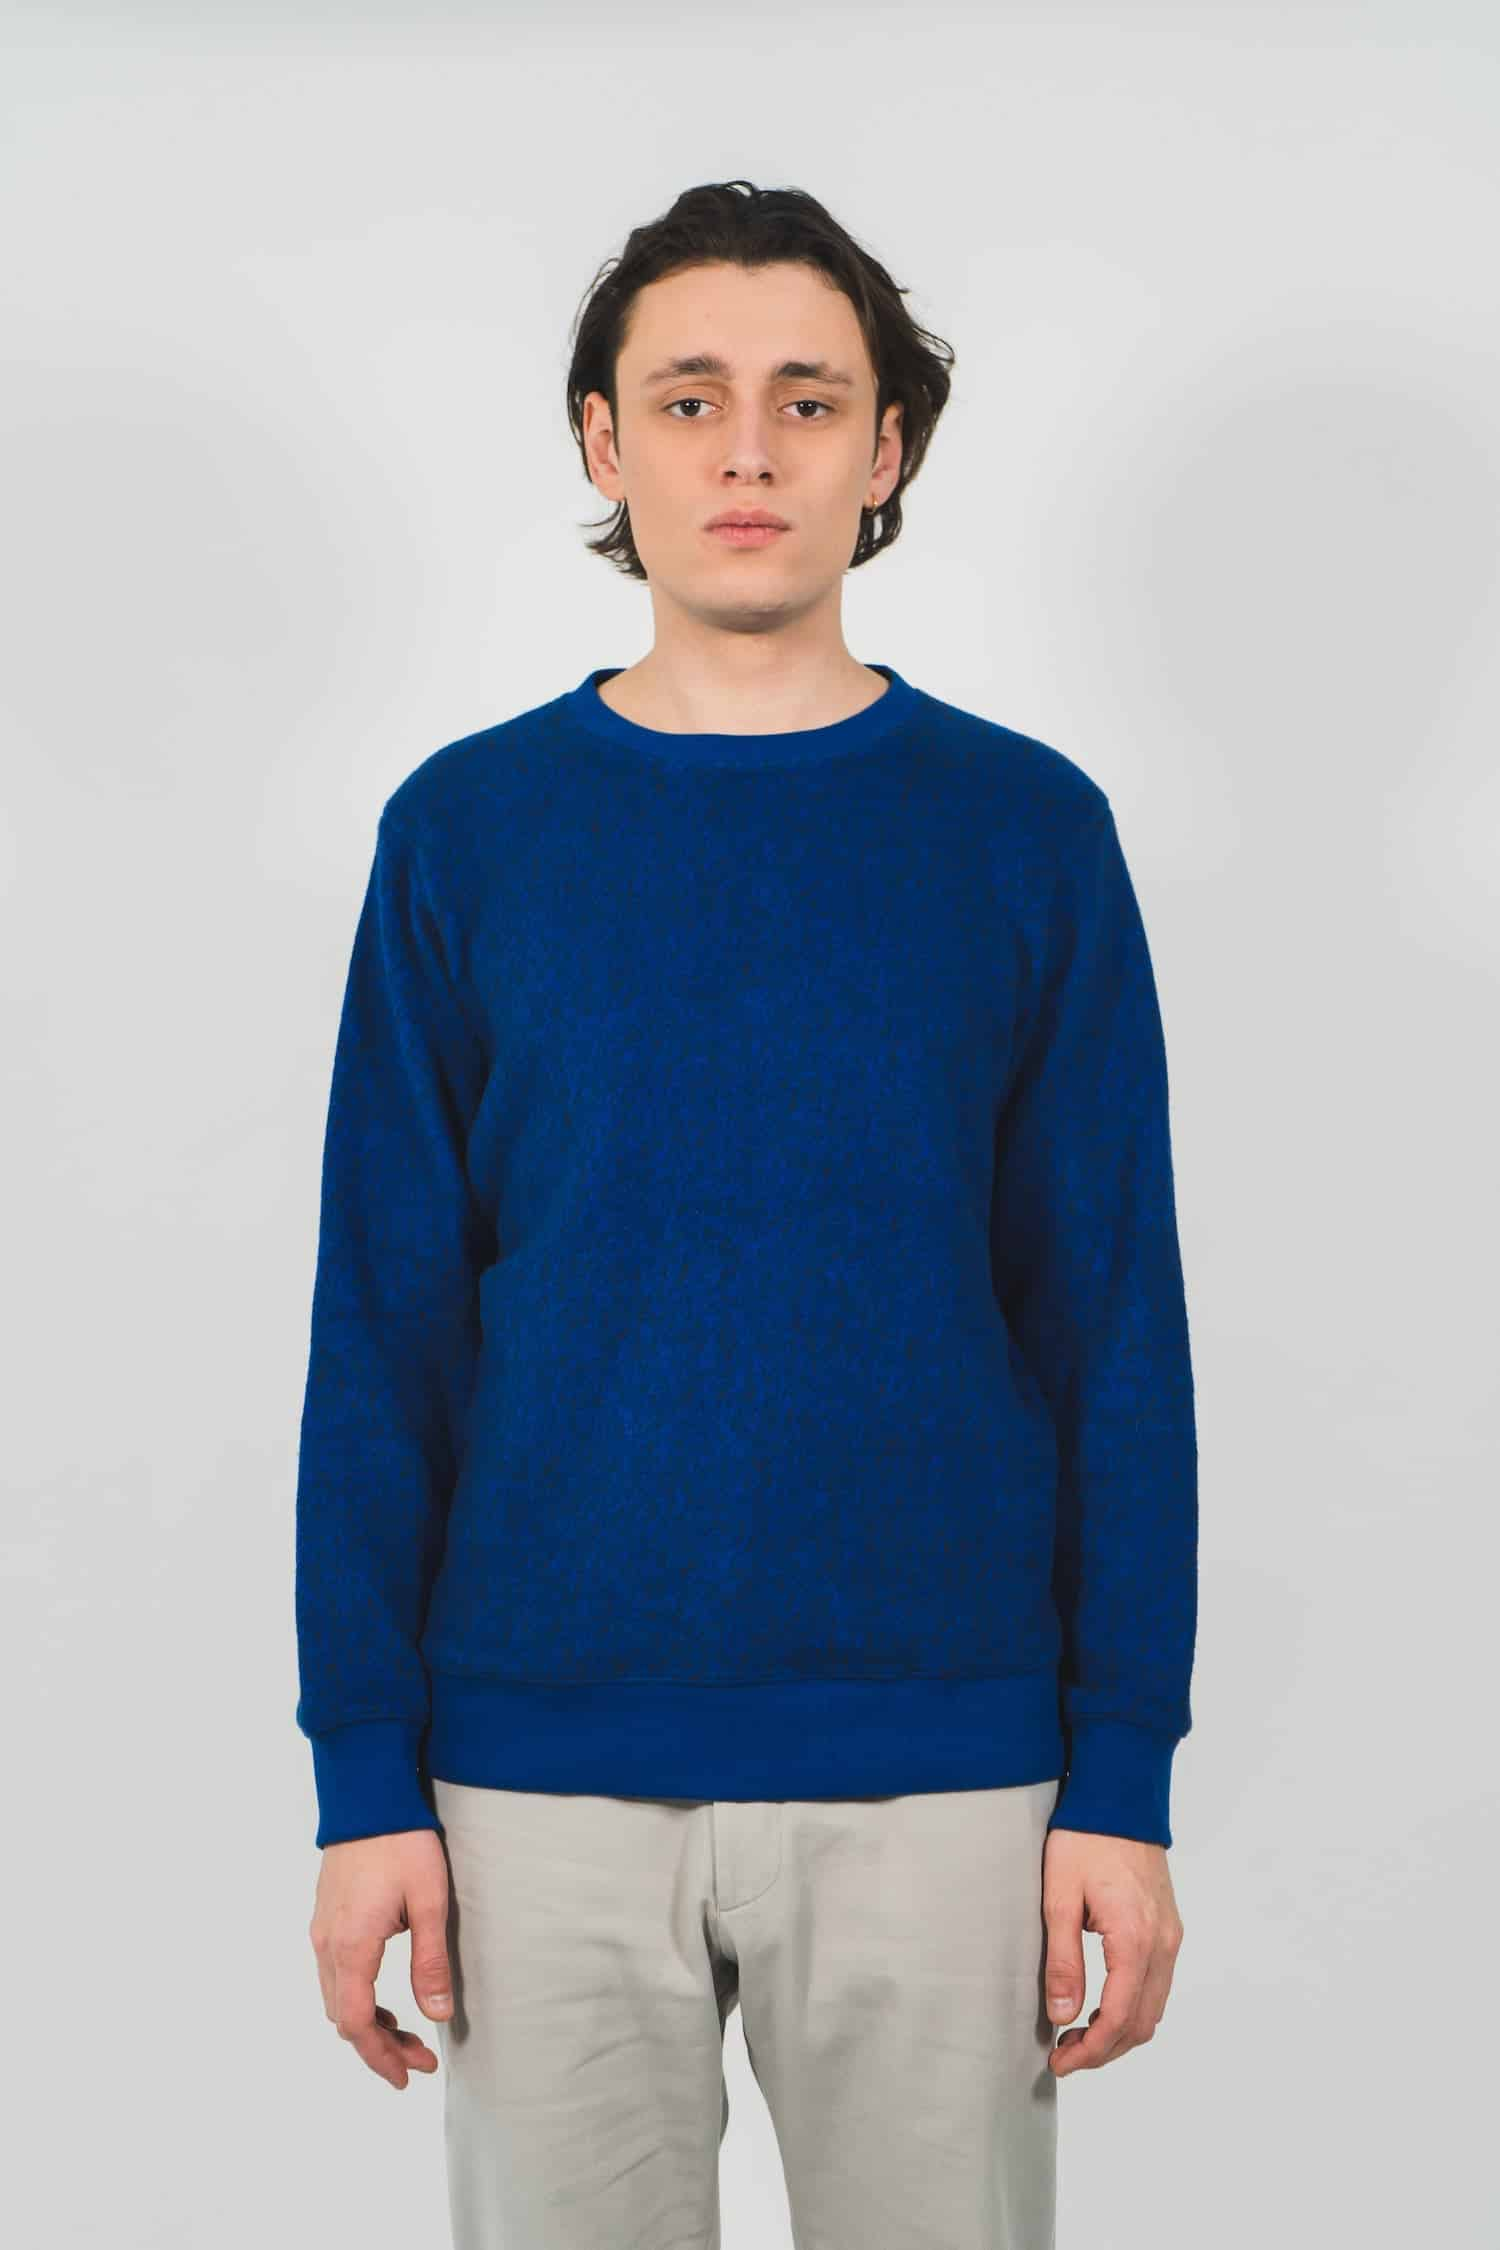 Castart BIll Sweater AW19